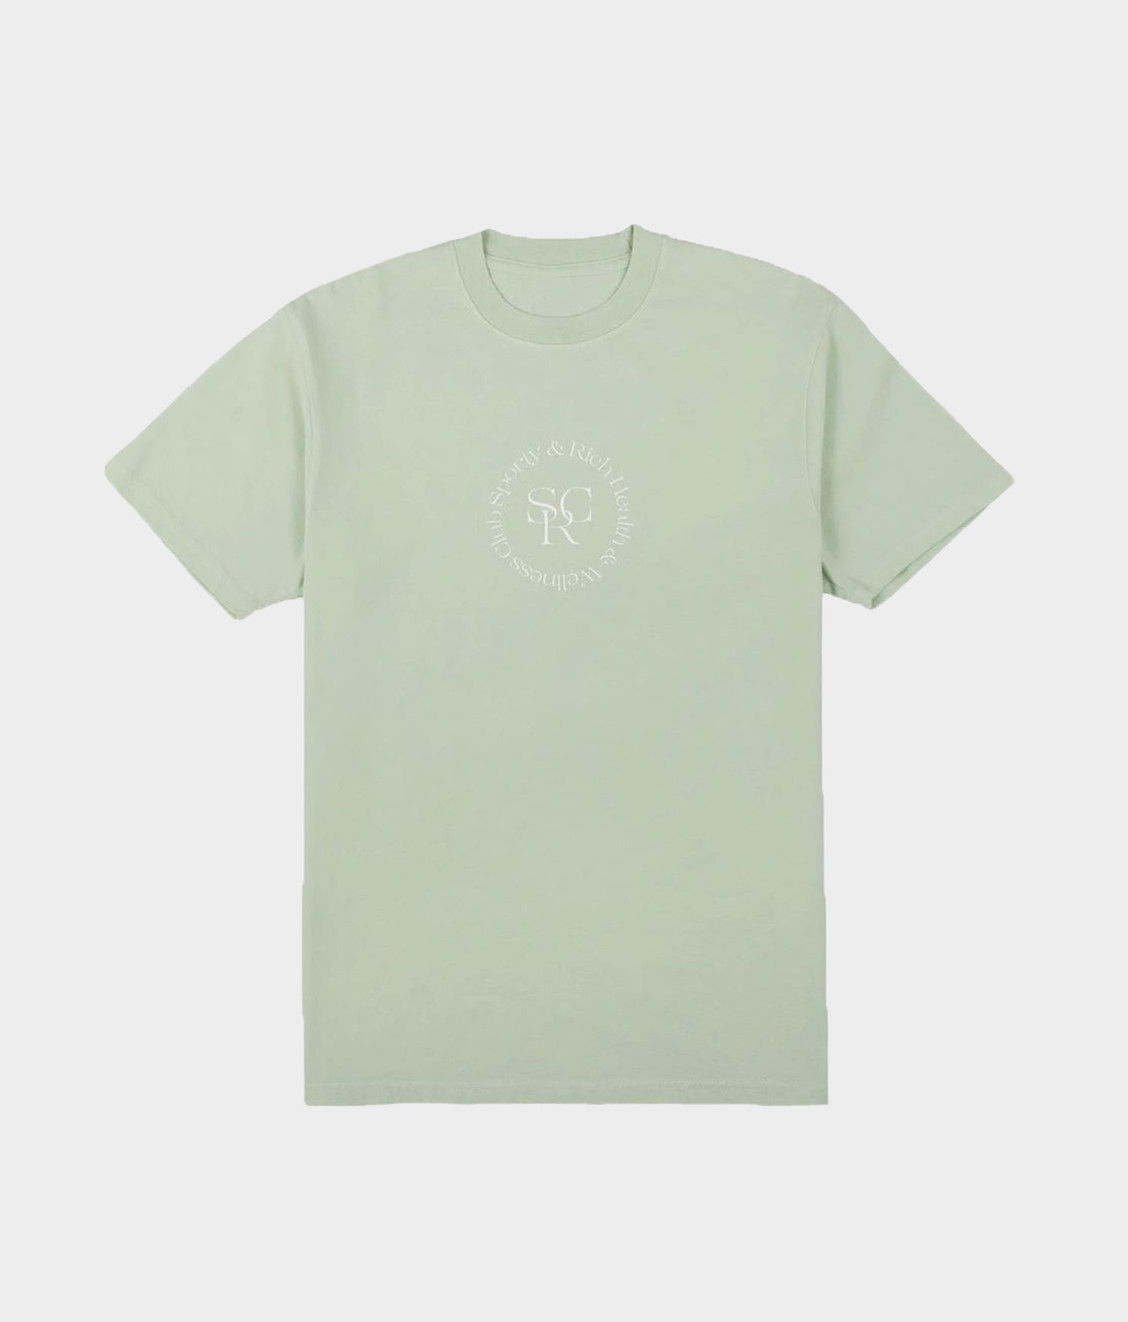 Sporty and Rich Sporty & Rich SRHWC Tee Mint Cream